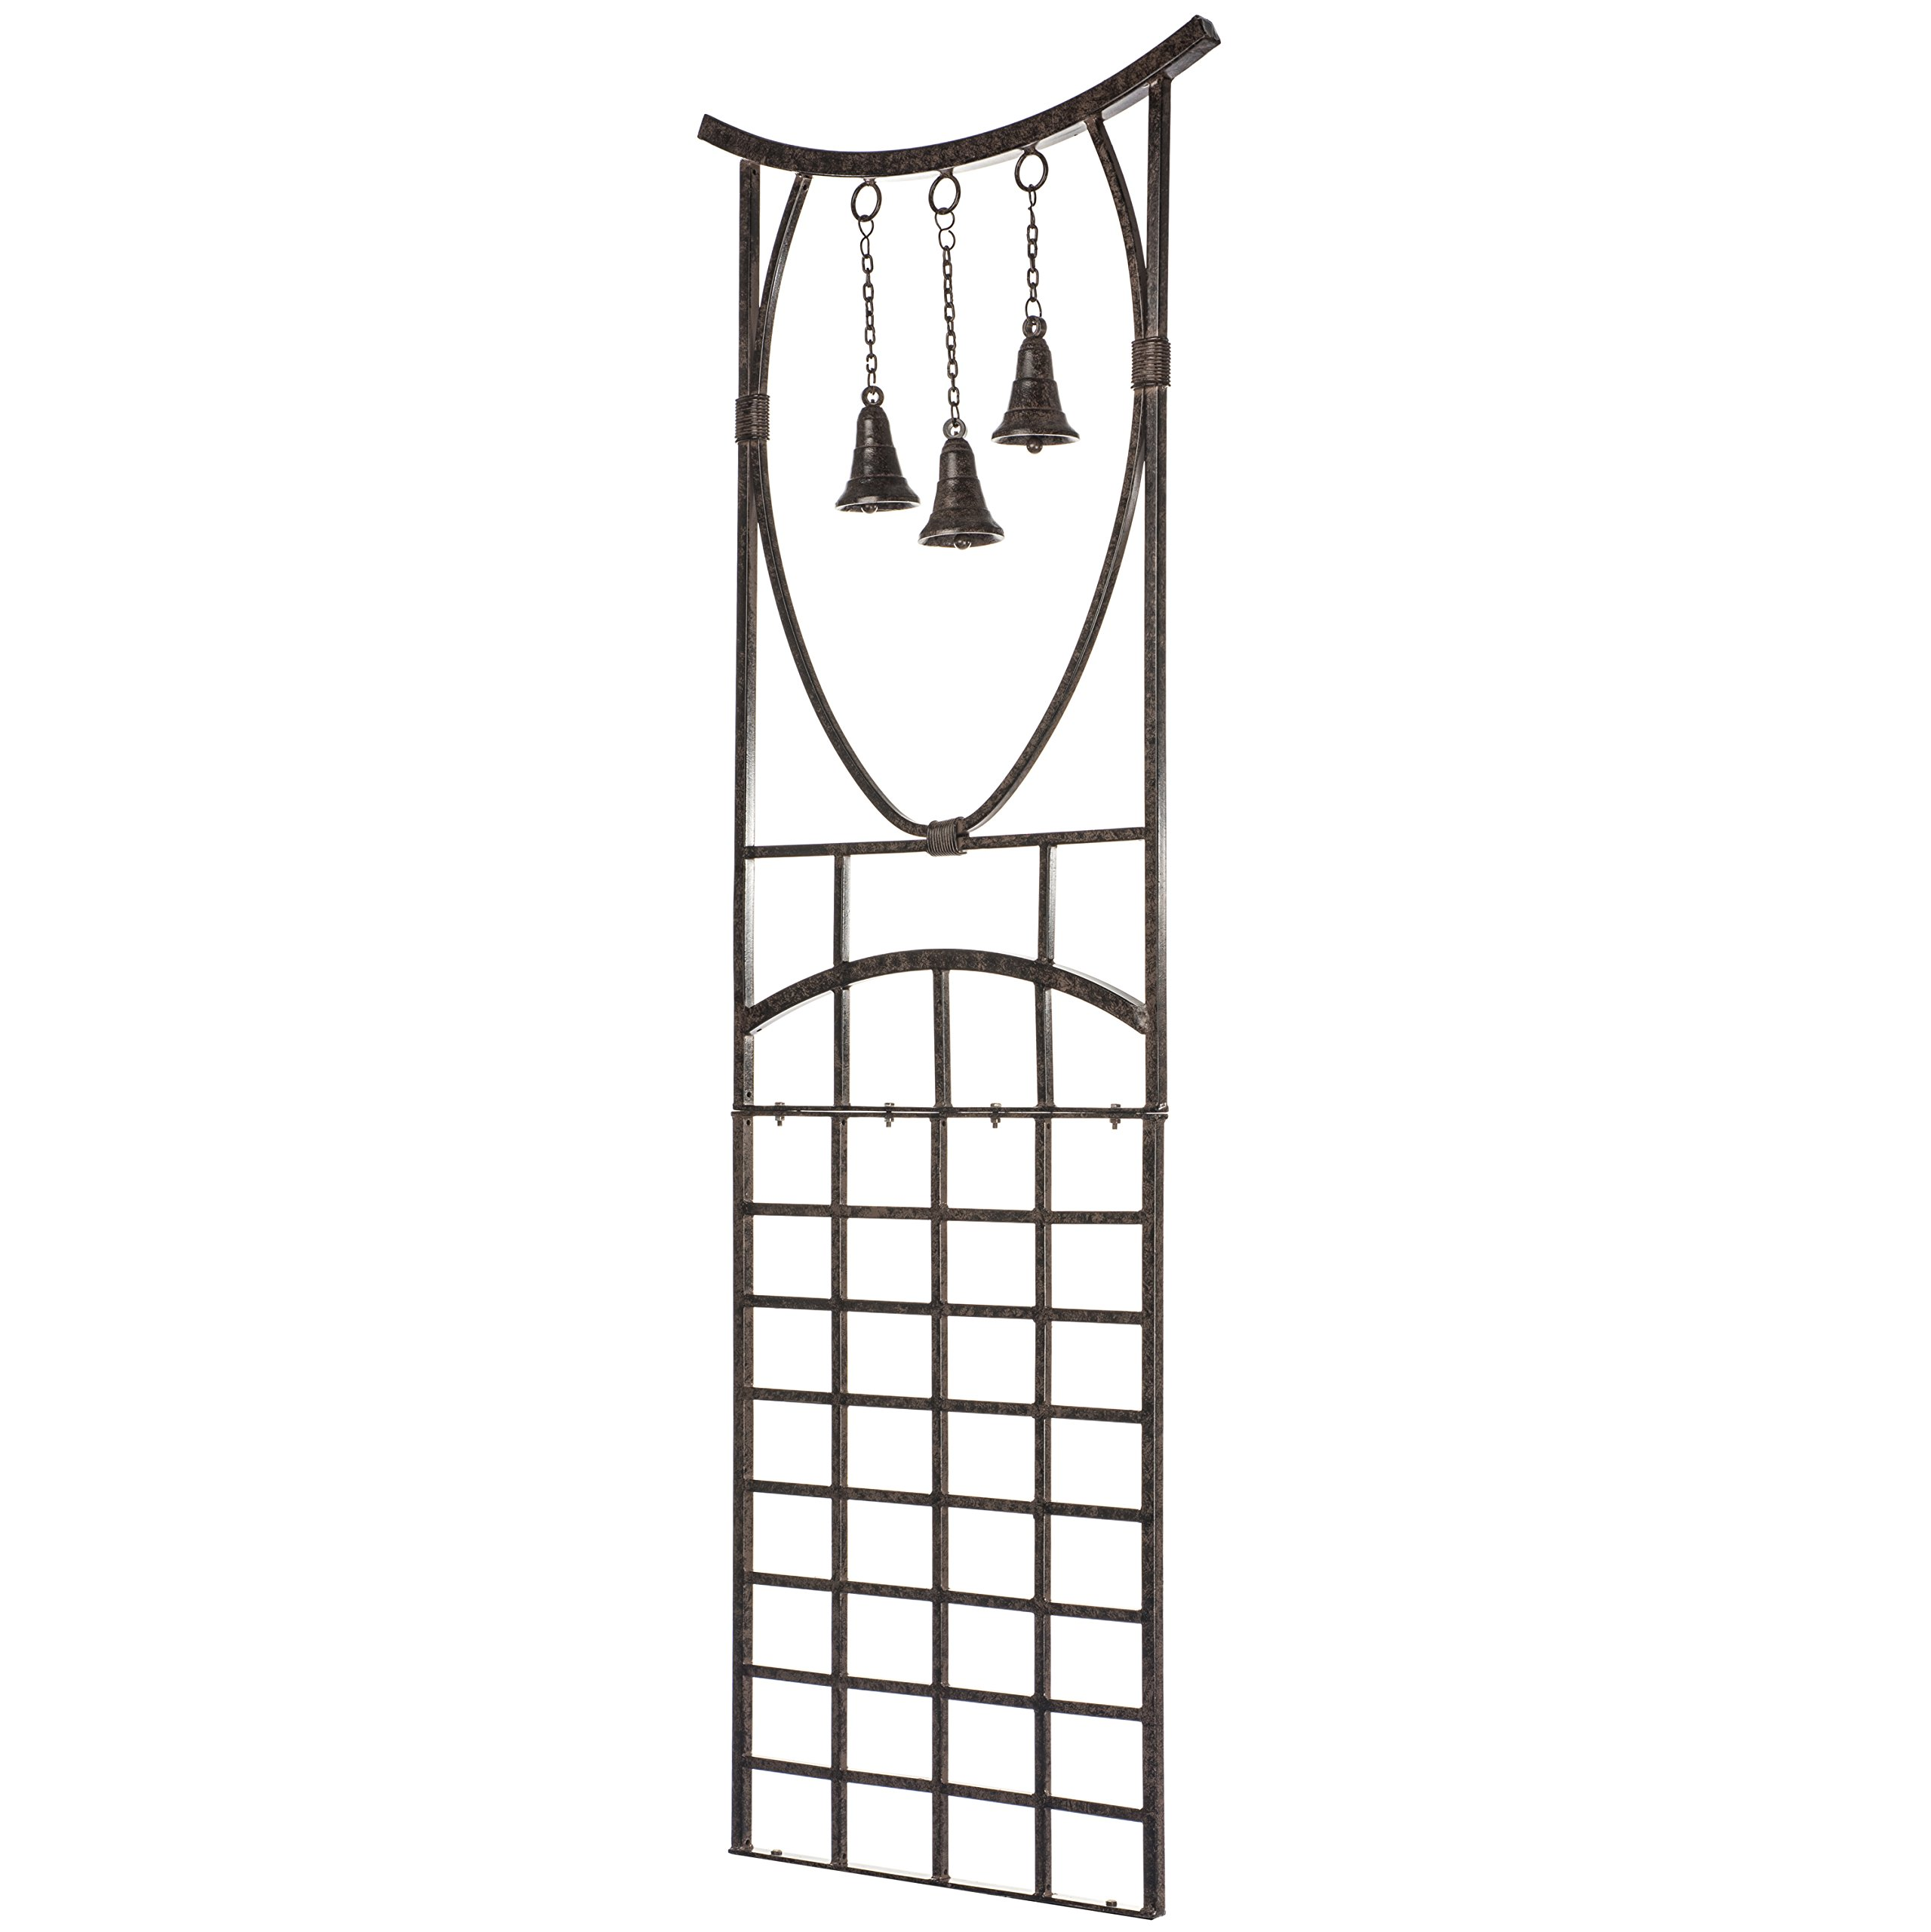 H Potter Trellis Wrought Iron Weather Resistant Garden Yard Art by H Potter